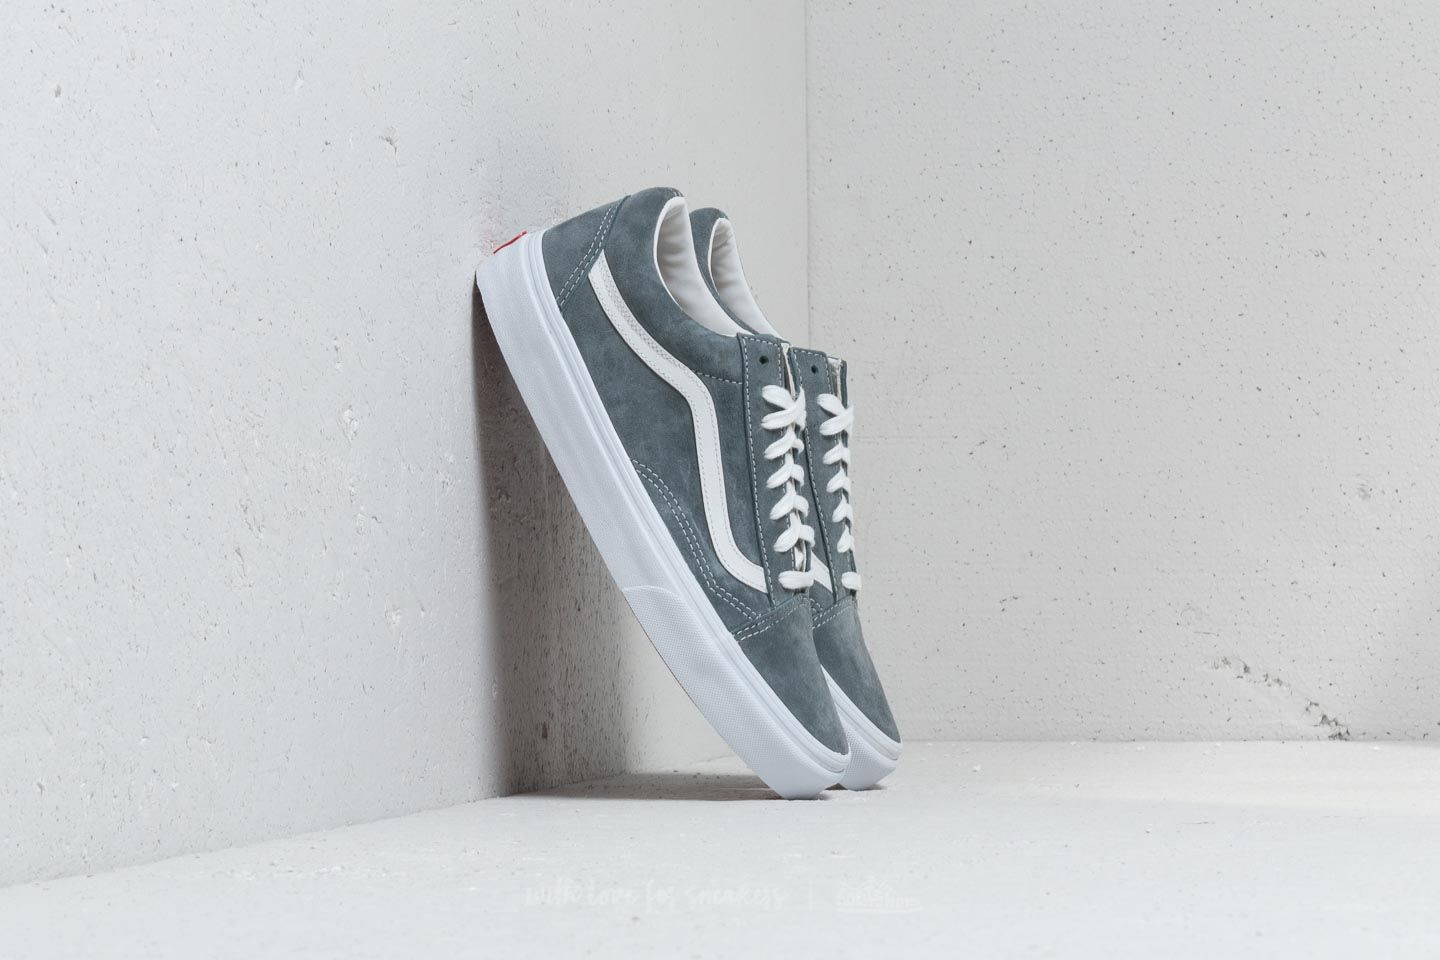 57d57e1daf Vans Old Skool (Pig Suede) Stormy Weather  White at a great price 91